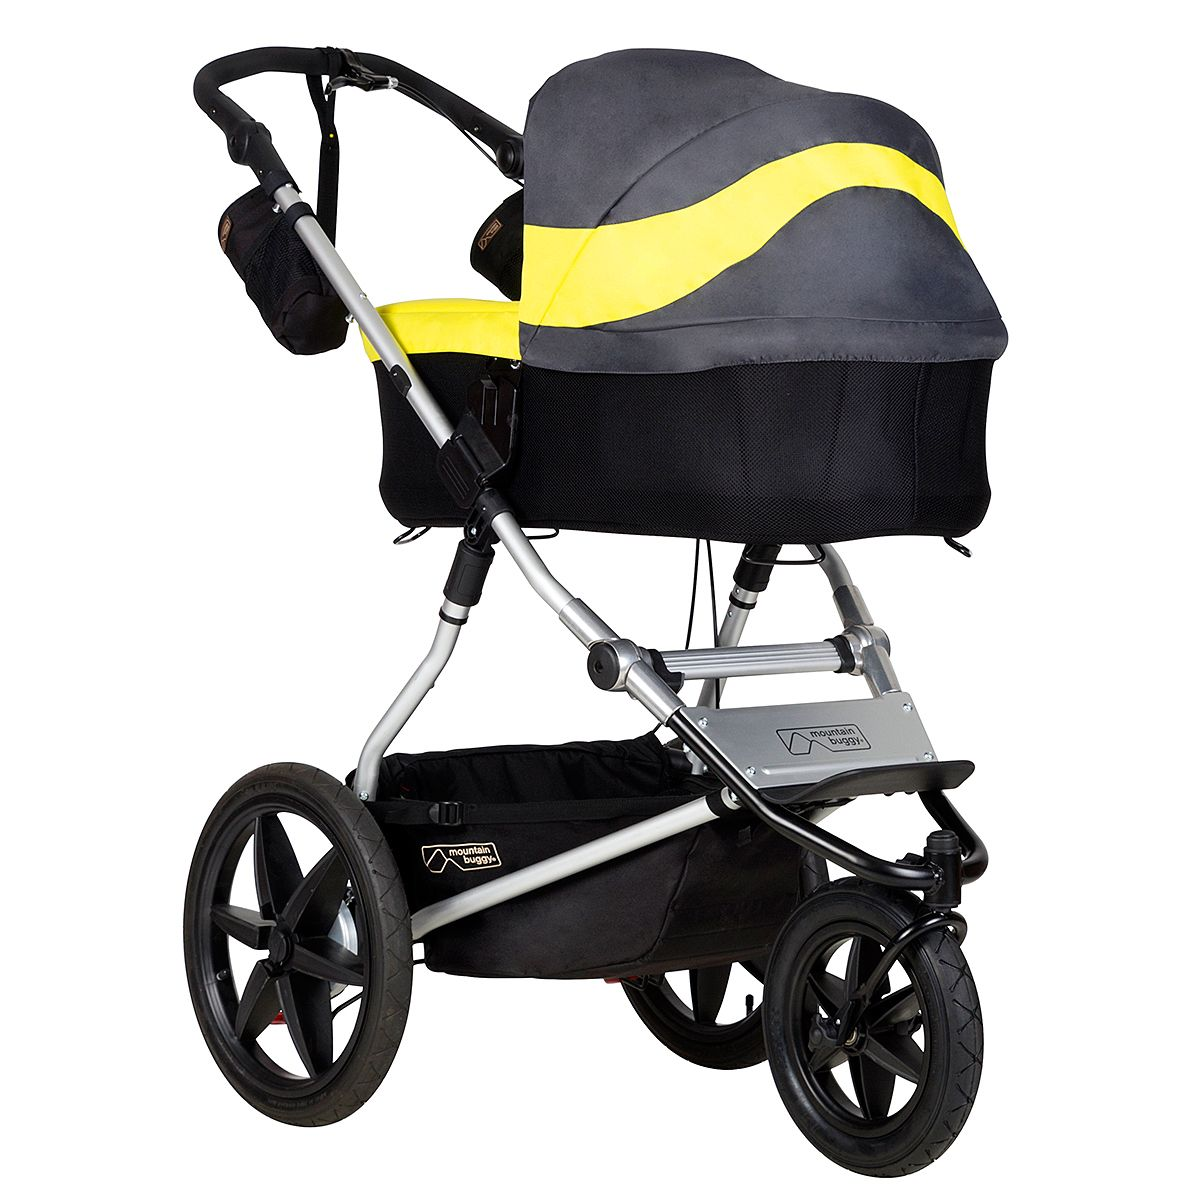 Carrycot plus for urban jungle, terrain and +one Jogging